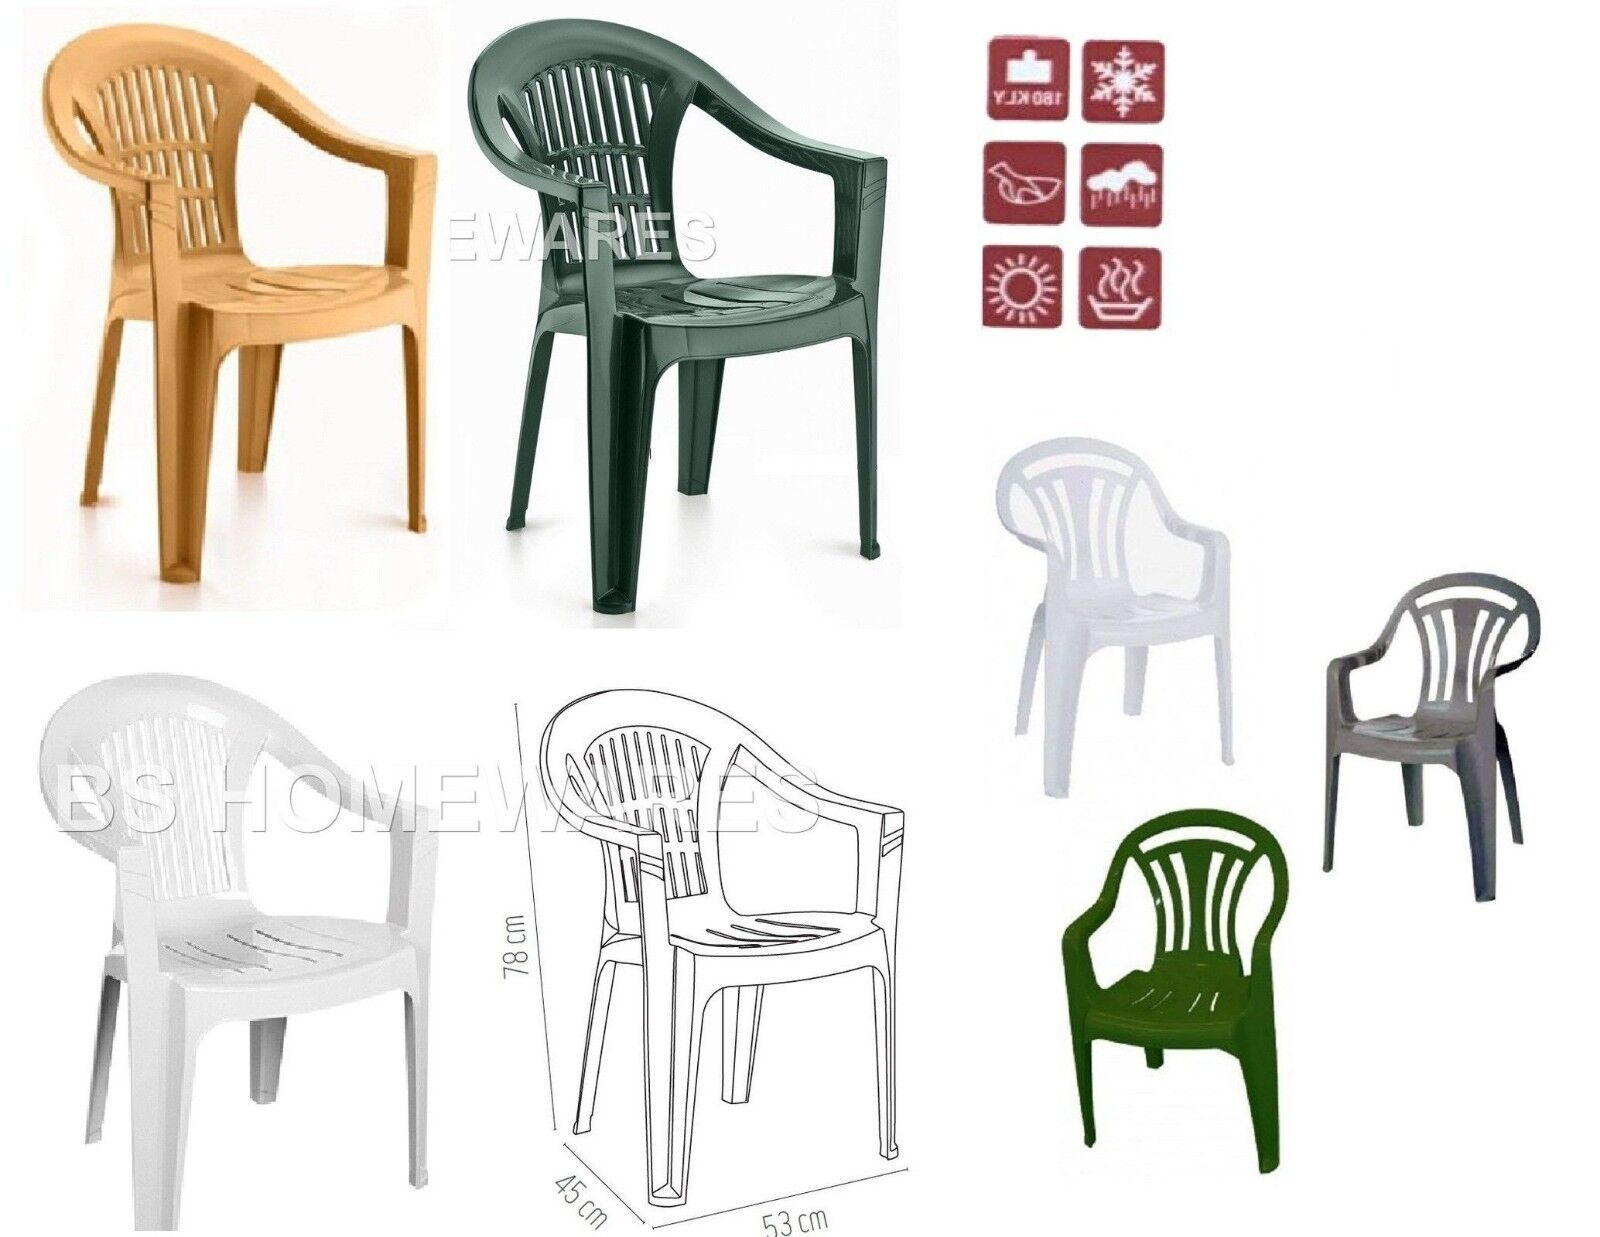 Low Back Lawn Chairs Plastic Low Back Chair Patio Garden Outdoor Chairs